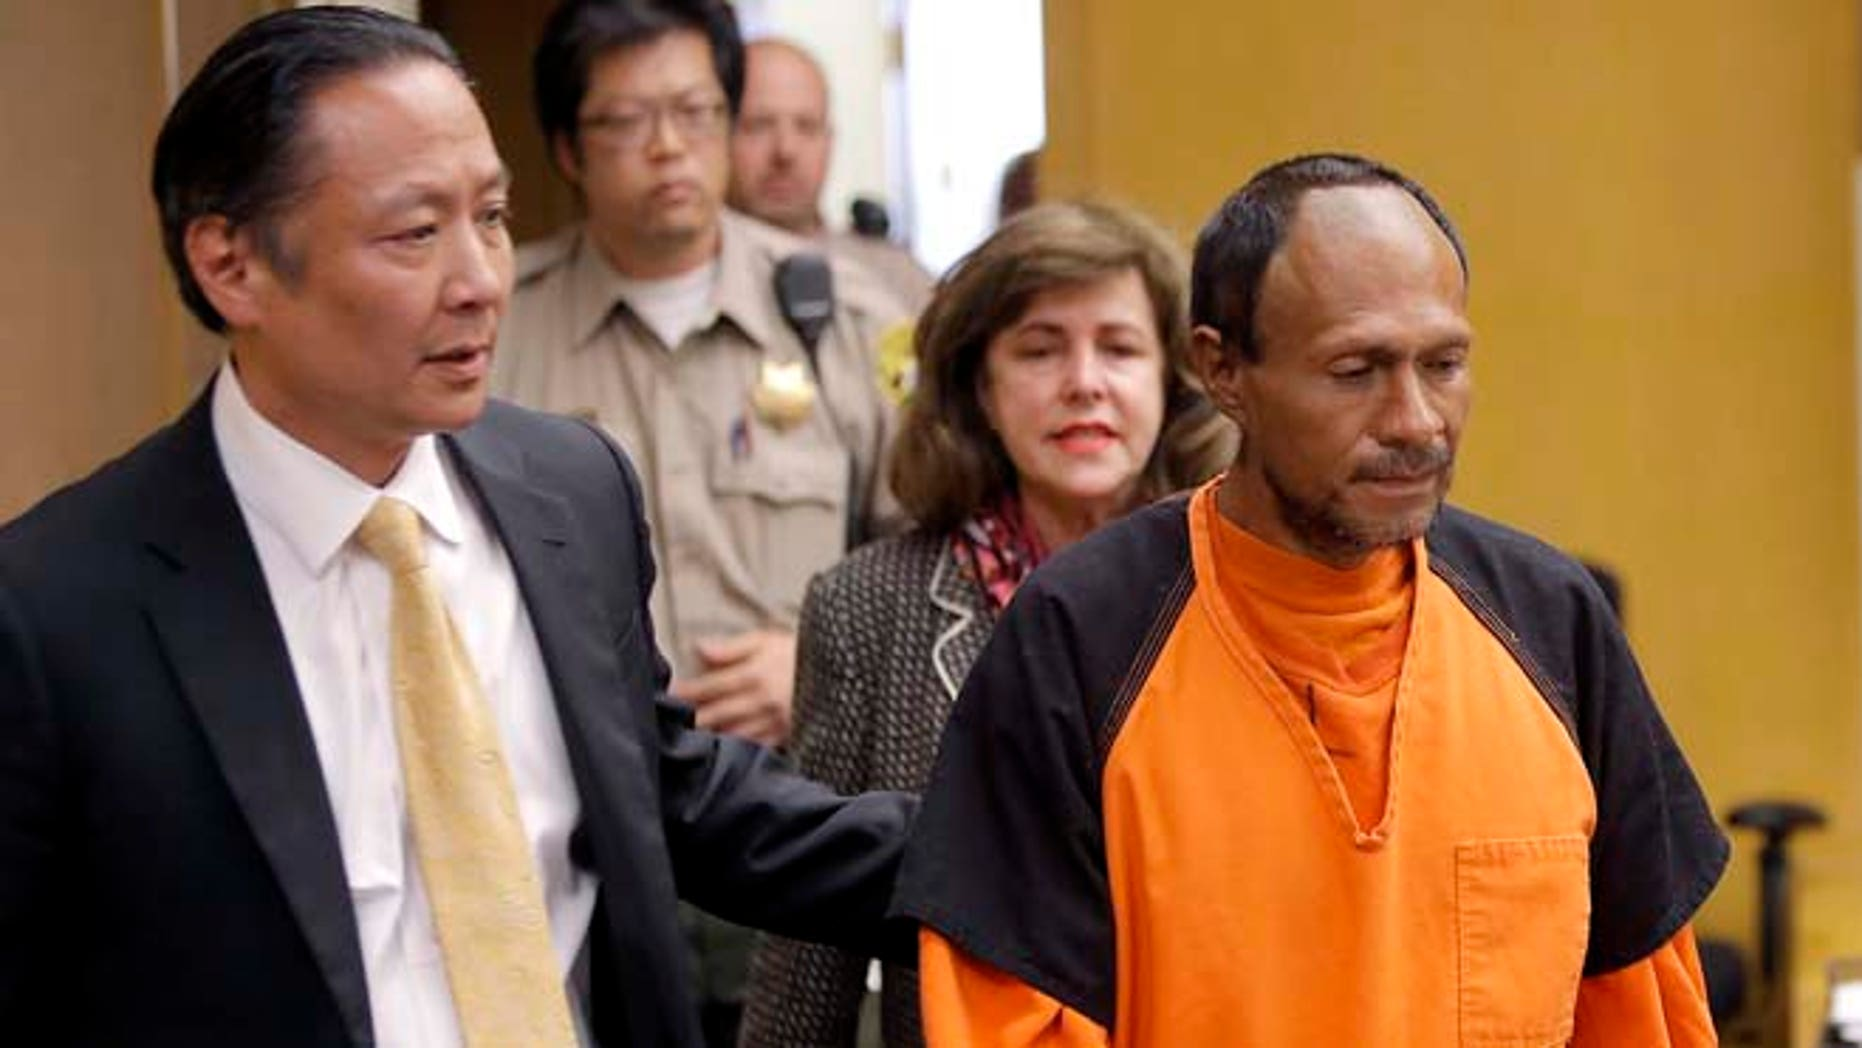 FILE - In this Tuesday, July 7, 2015 file photo, Juan Francisco Lopez-Sanchez, right, is lead into the courtroom by San Francisco Public Defender Jeff Adachi, left, and Assistant District Attorney Diana Garciaor, center, for his arraignment at the Hall of Justice in San Francisco. (Michael Macor/San Francisco Chronicle via AP, Pool, File)